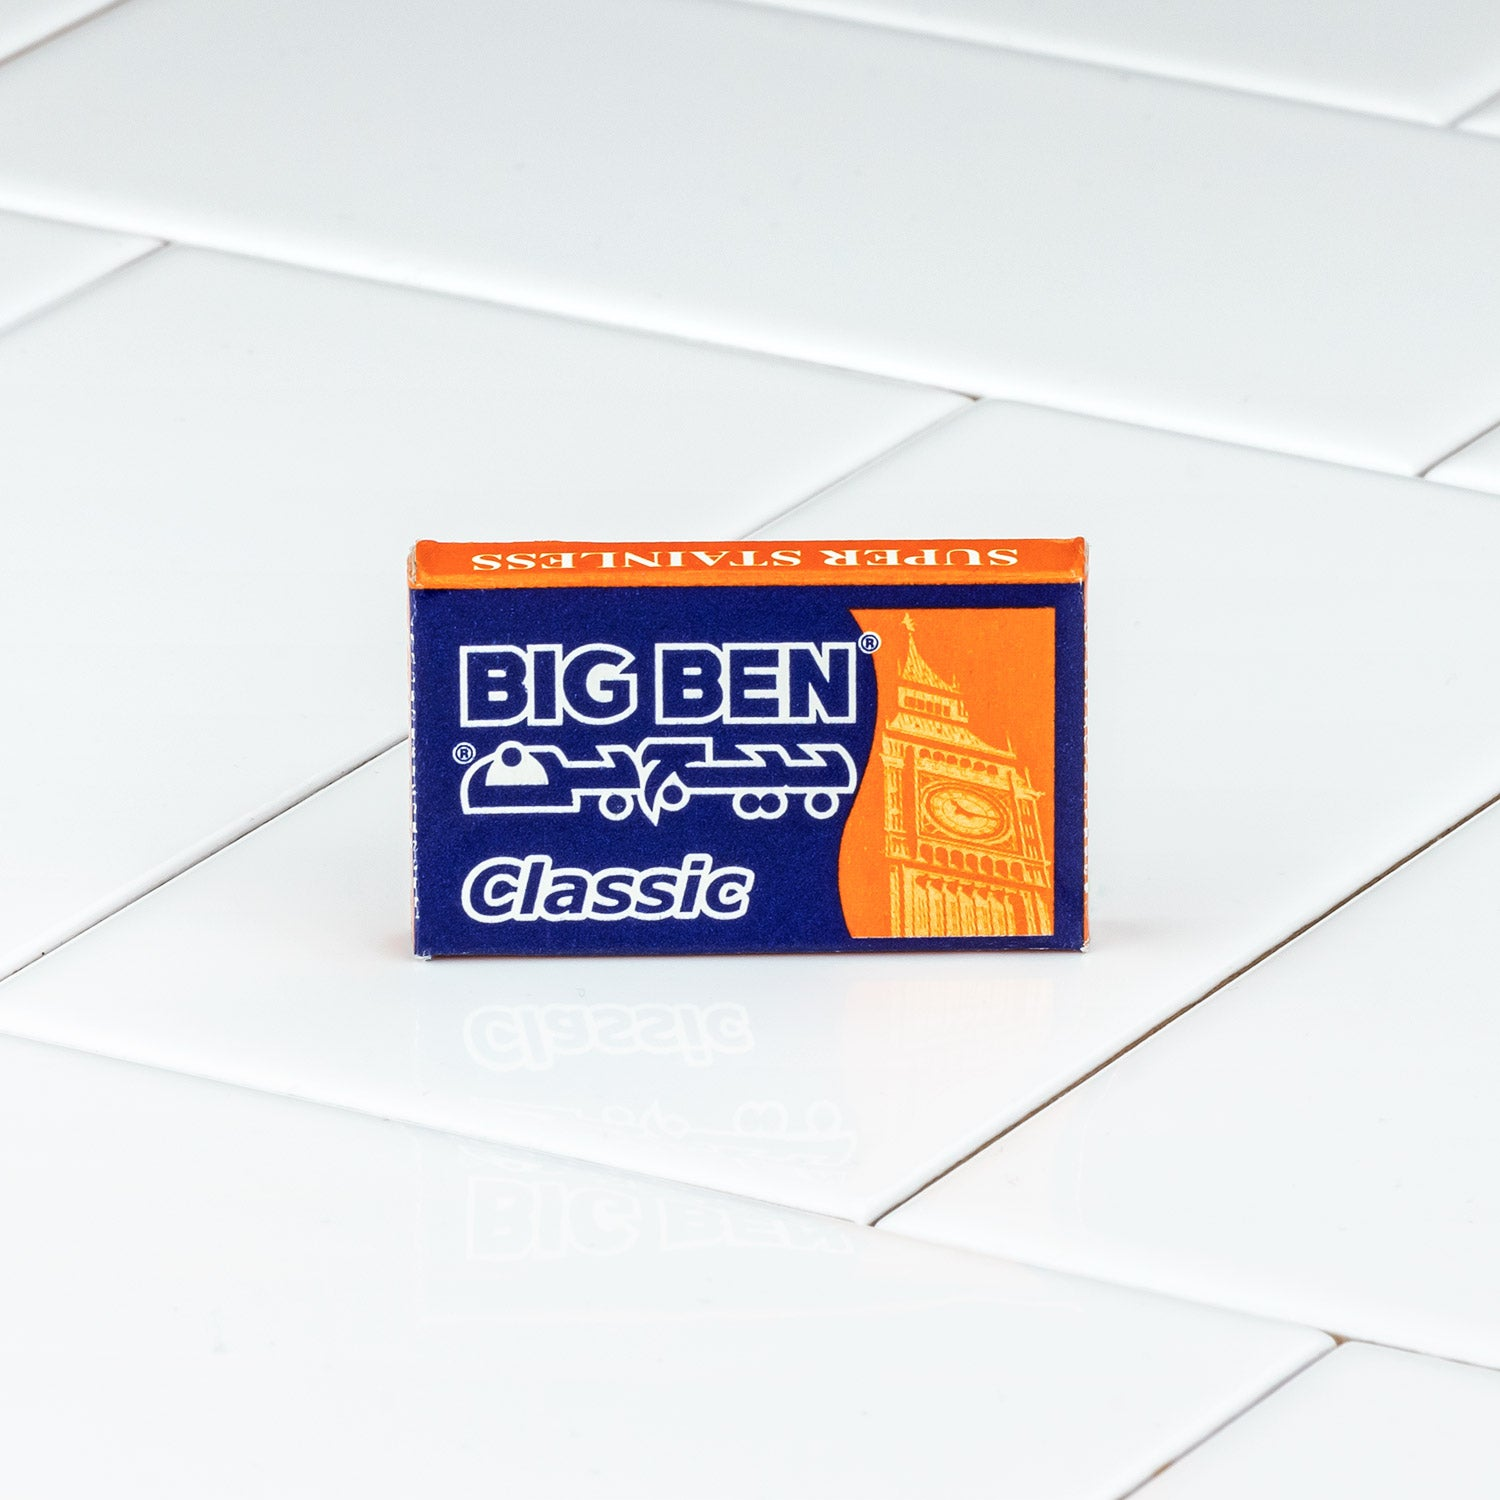 Big Ben Stainless Double Edge Razor Blades, 5 Pack